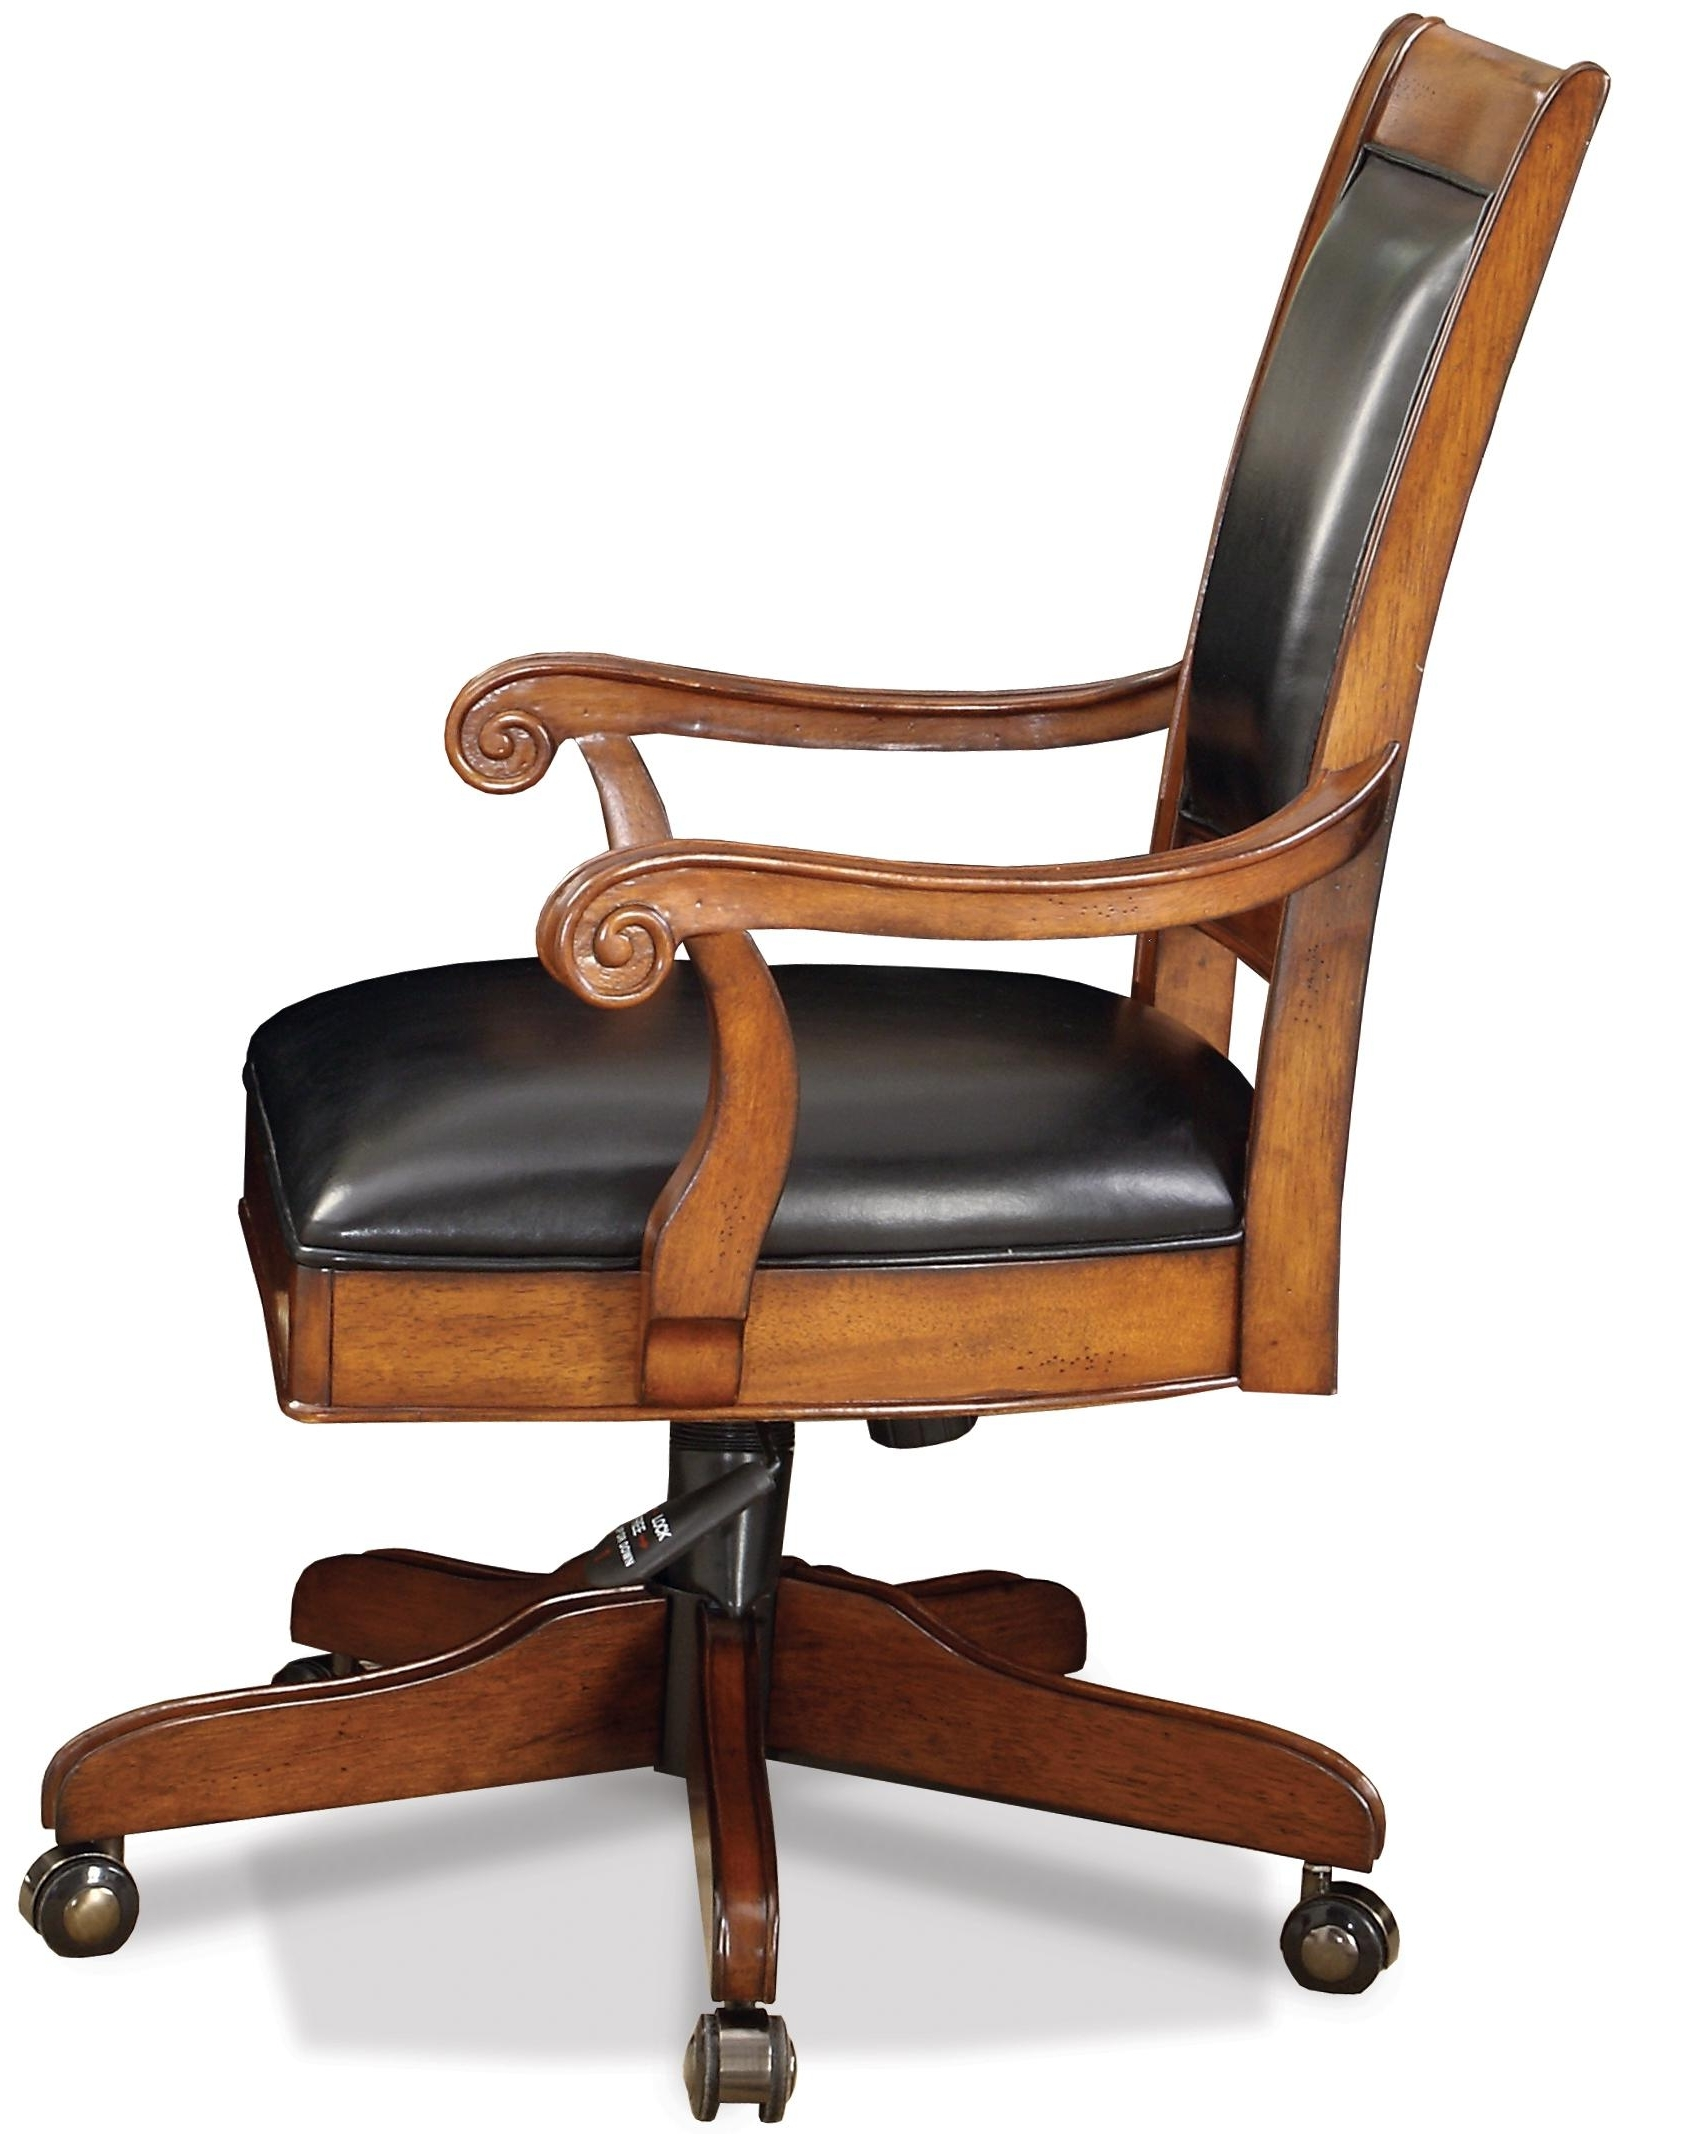 Most Current Riverside Furniture Cantata Executive Desk Chair With Casters Intended For Leather Wood Executive Office Chairs (View 13 of 20)